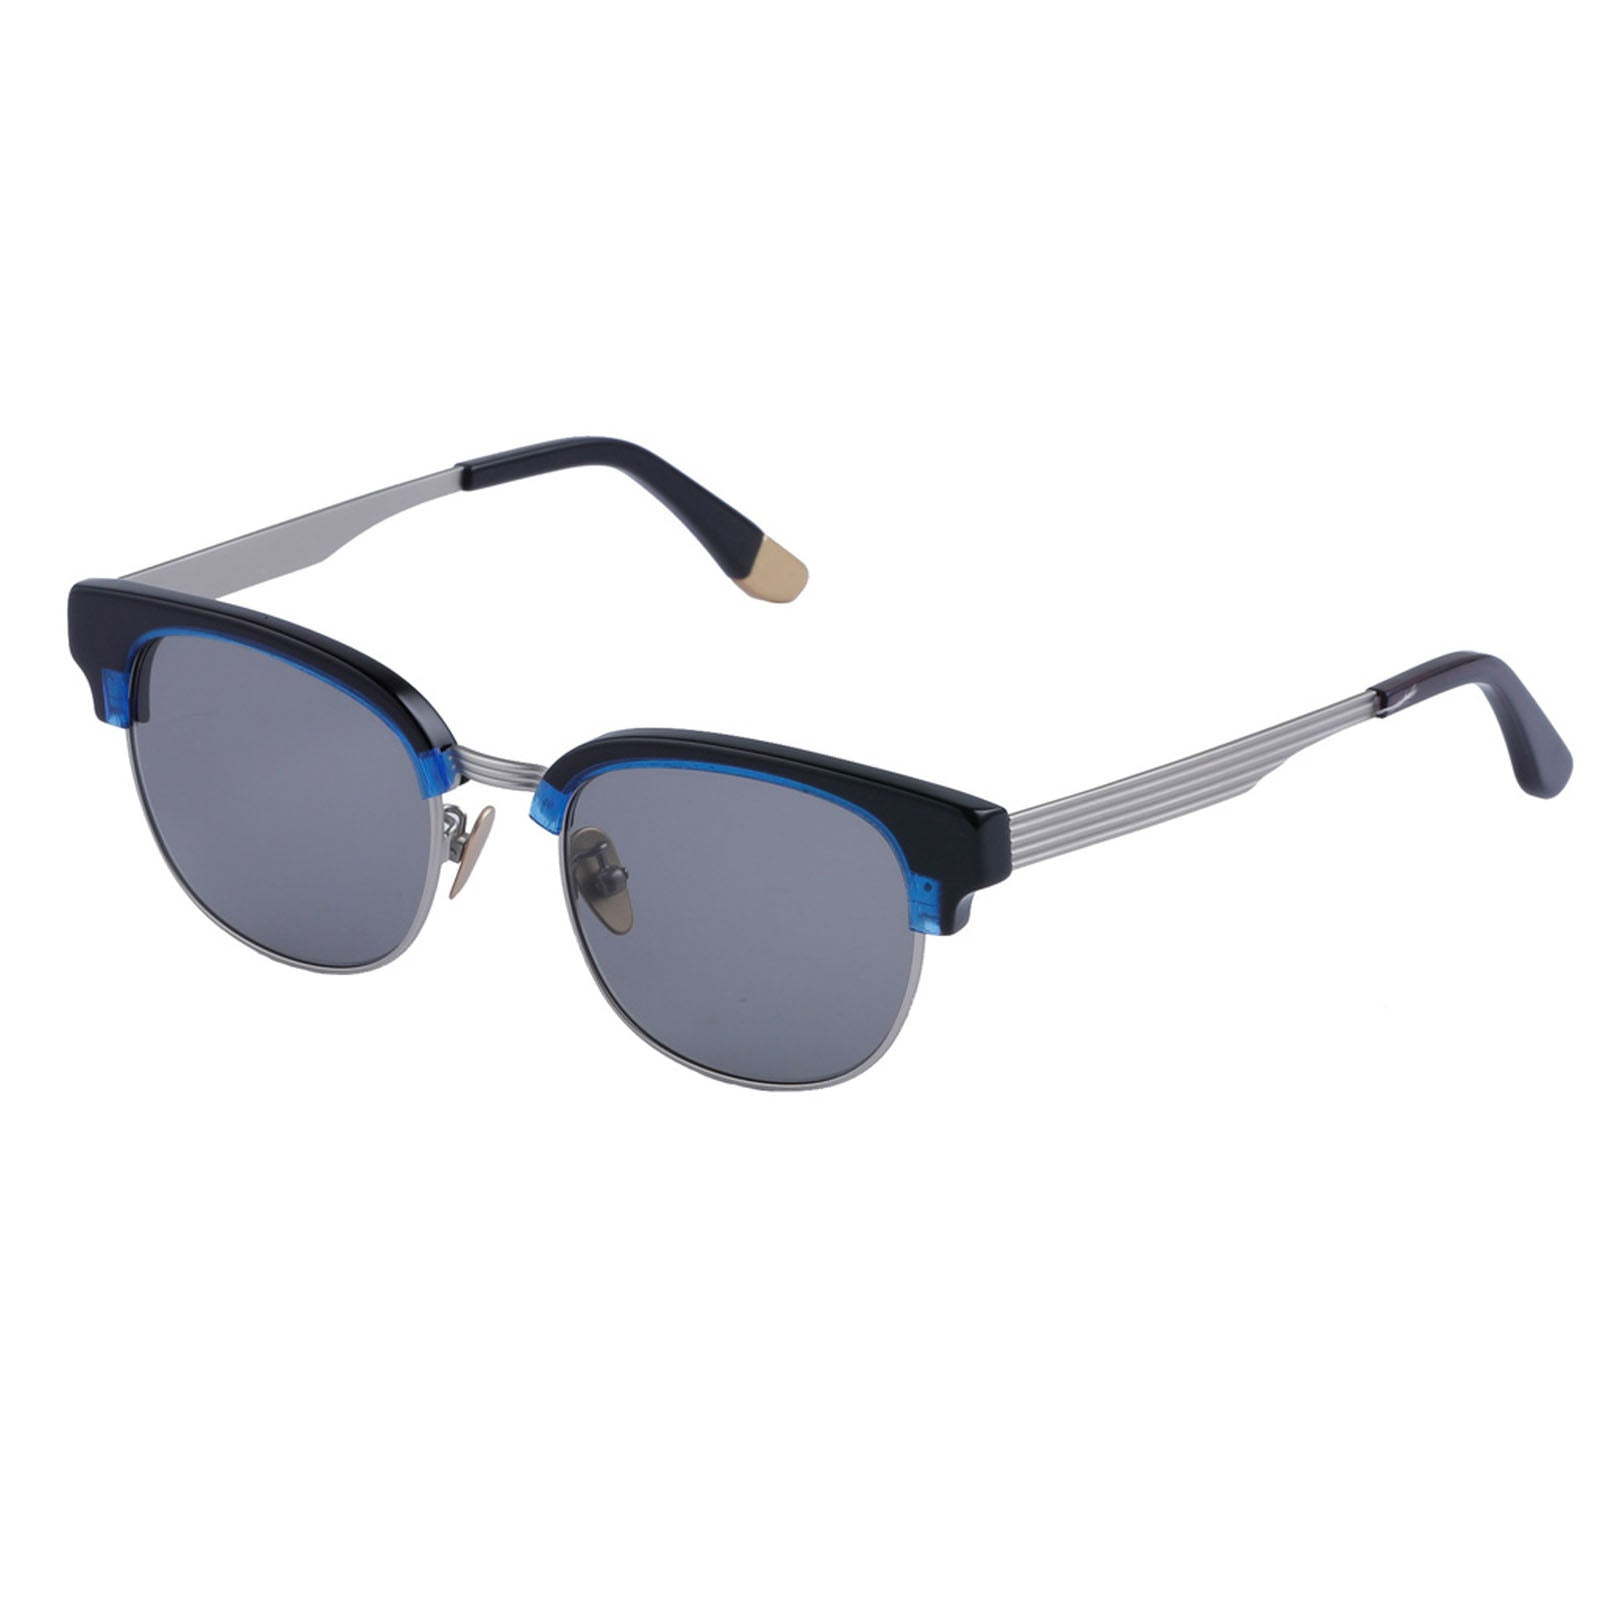 FAIRLANE POLARIZED LENS